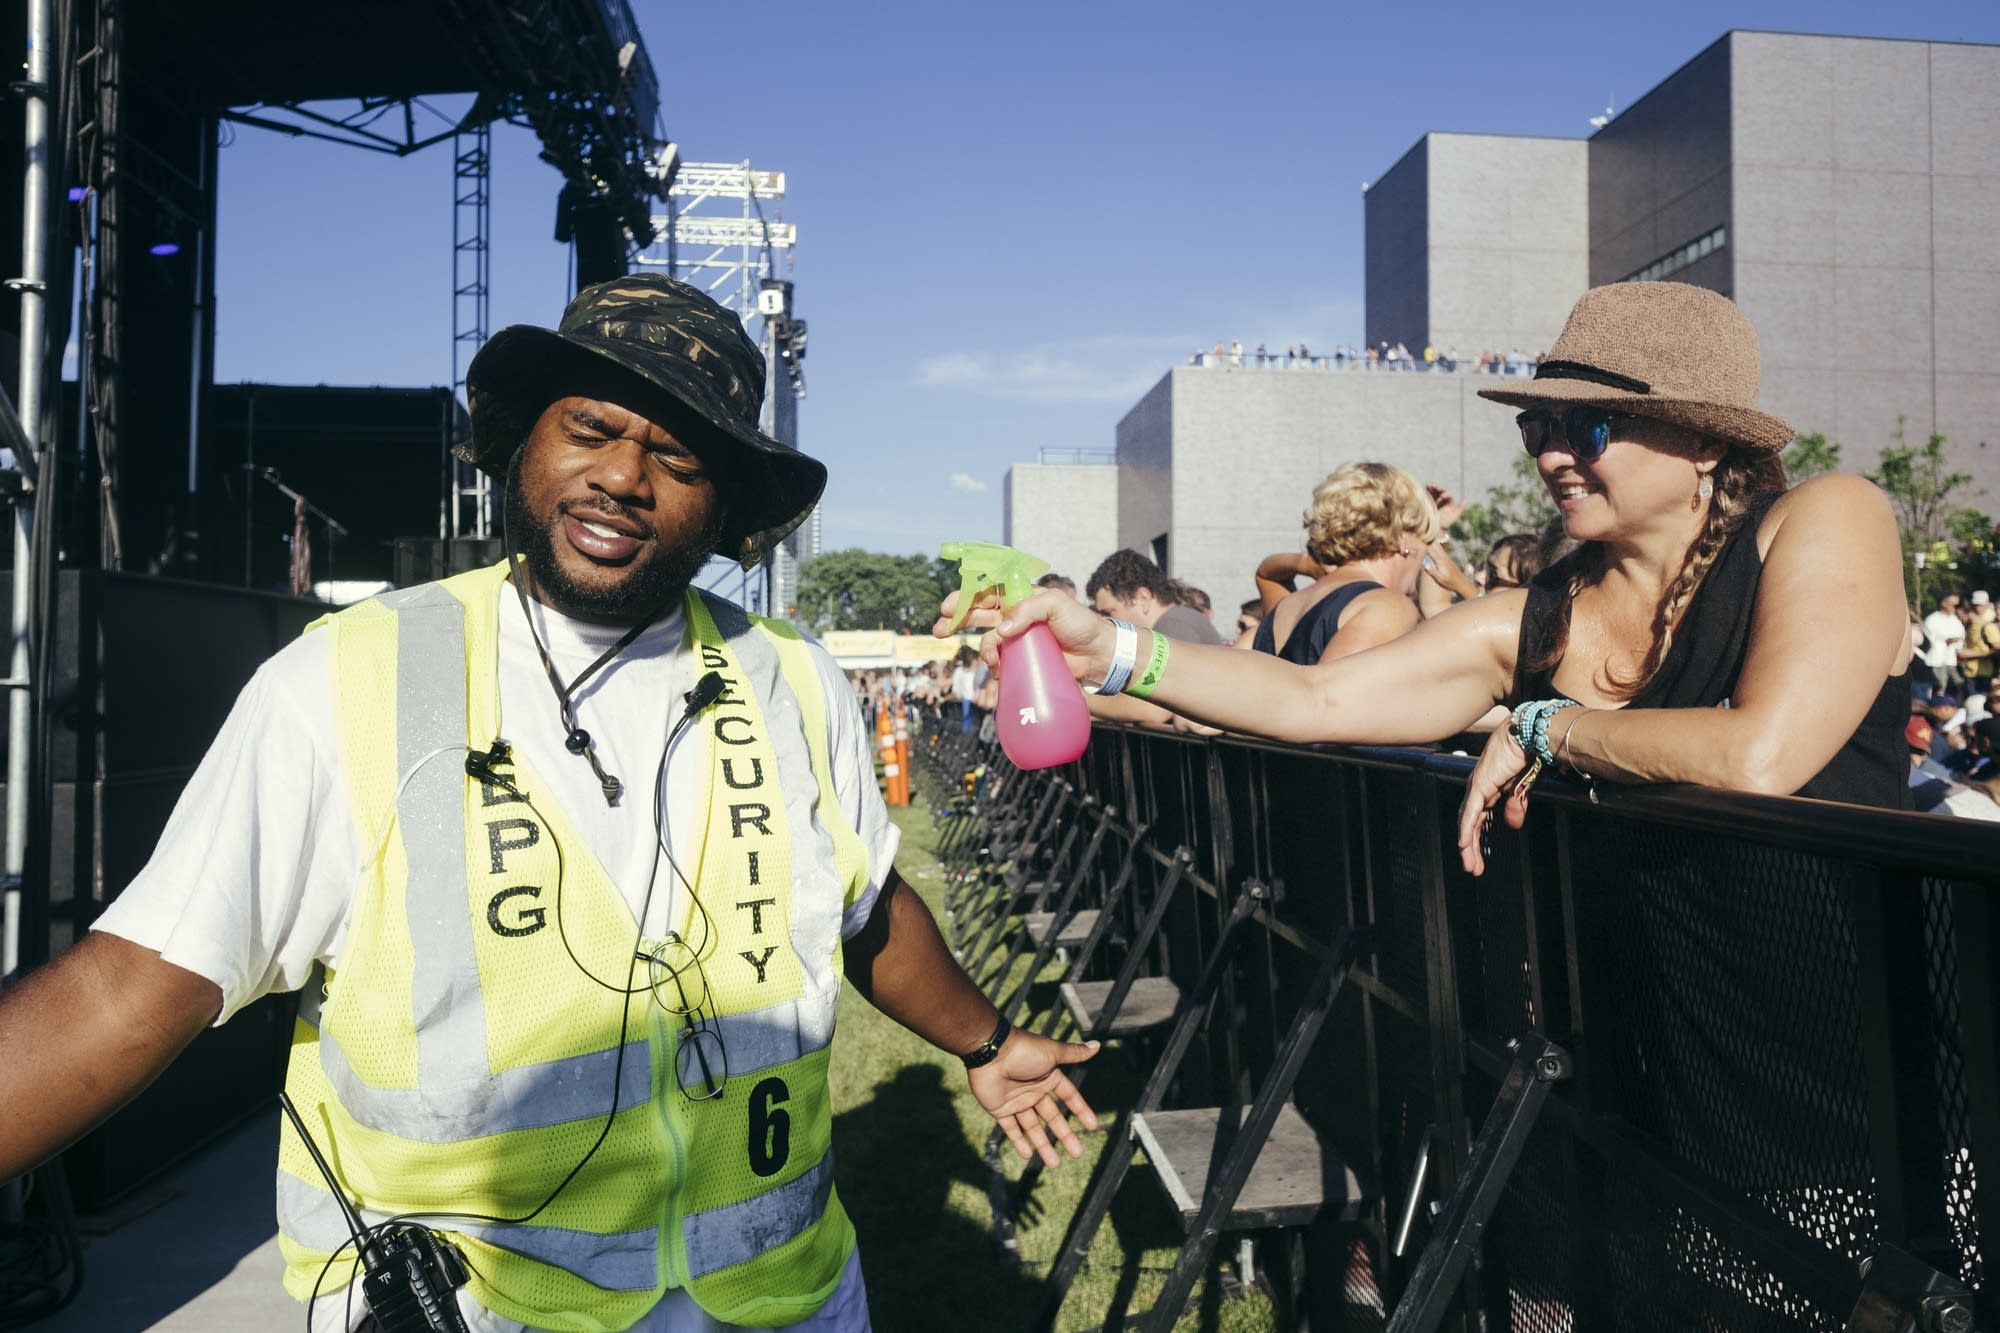 A fan helps a security guard cool off.